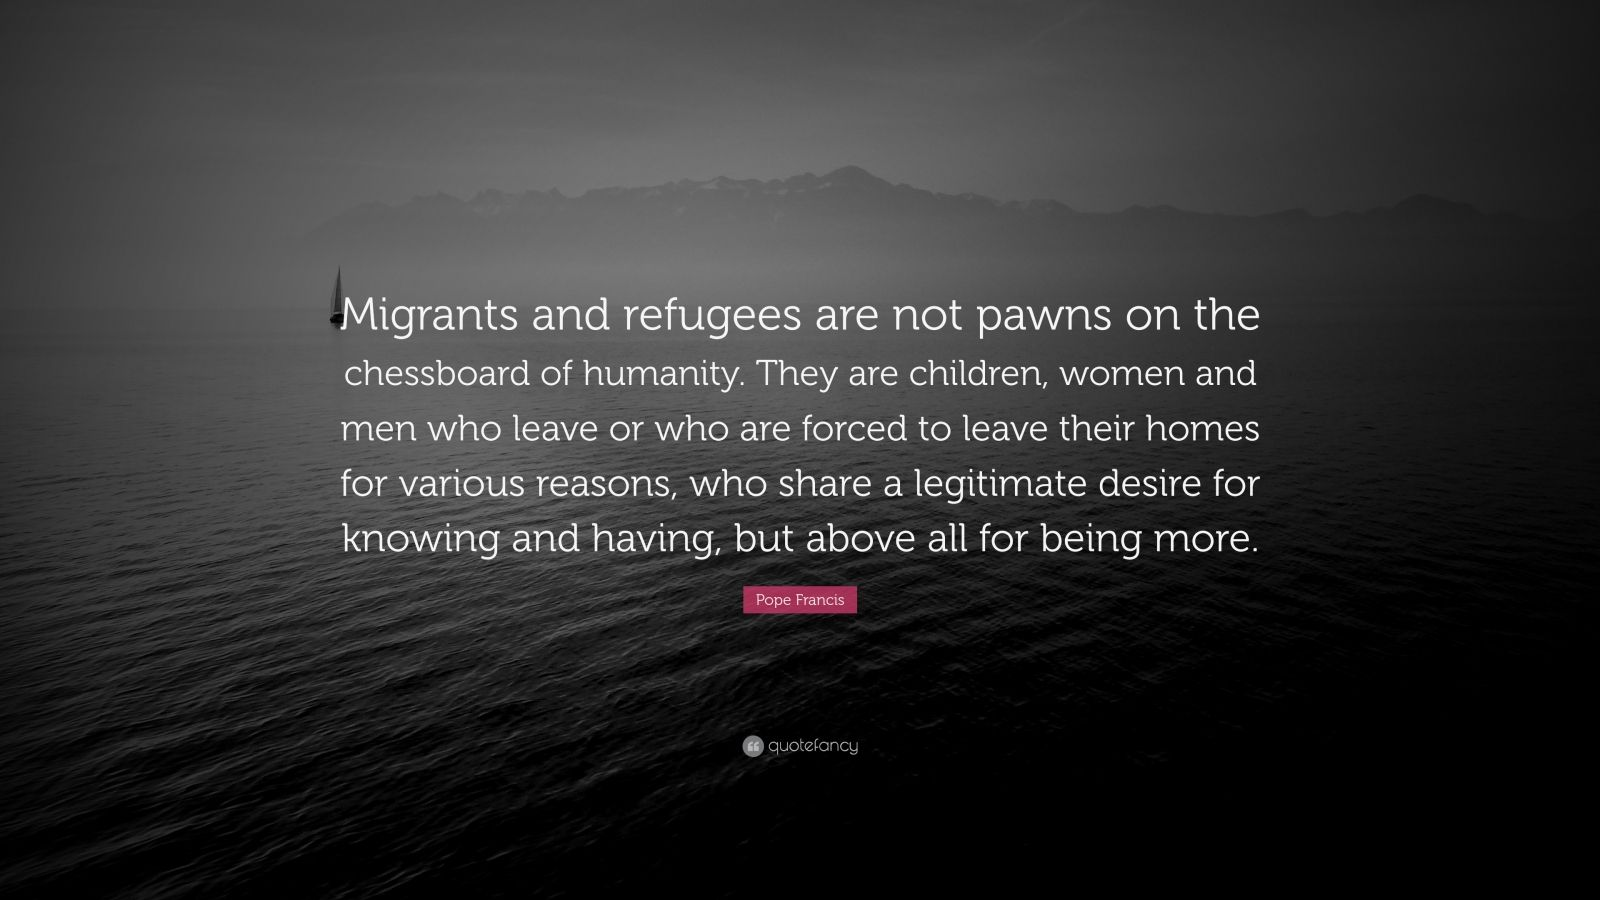 "Pope Francis Quote: ""Migrants and refugees are not pawns on the chessboard of humanity. They are children, women and men who leave or who are forced to leave their homes for various reasons, who share a legitimate desire for knowing and having, but above all for being more."""